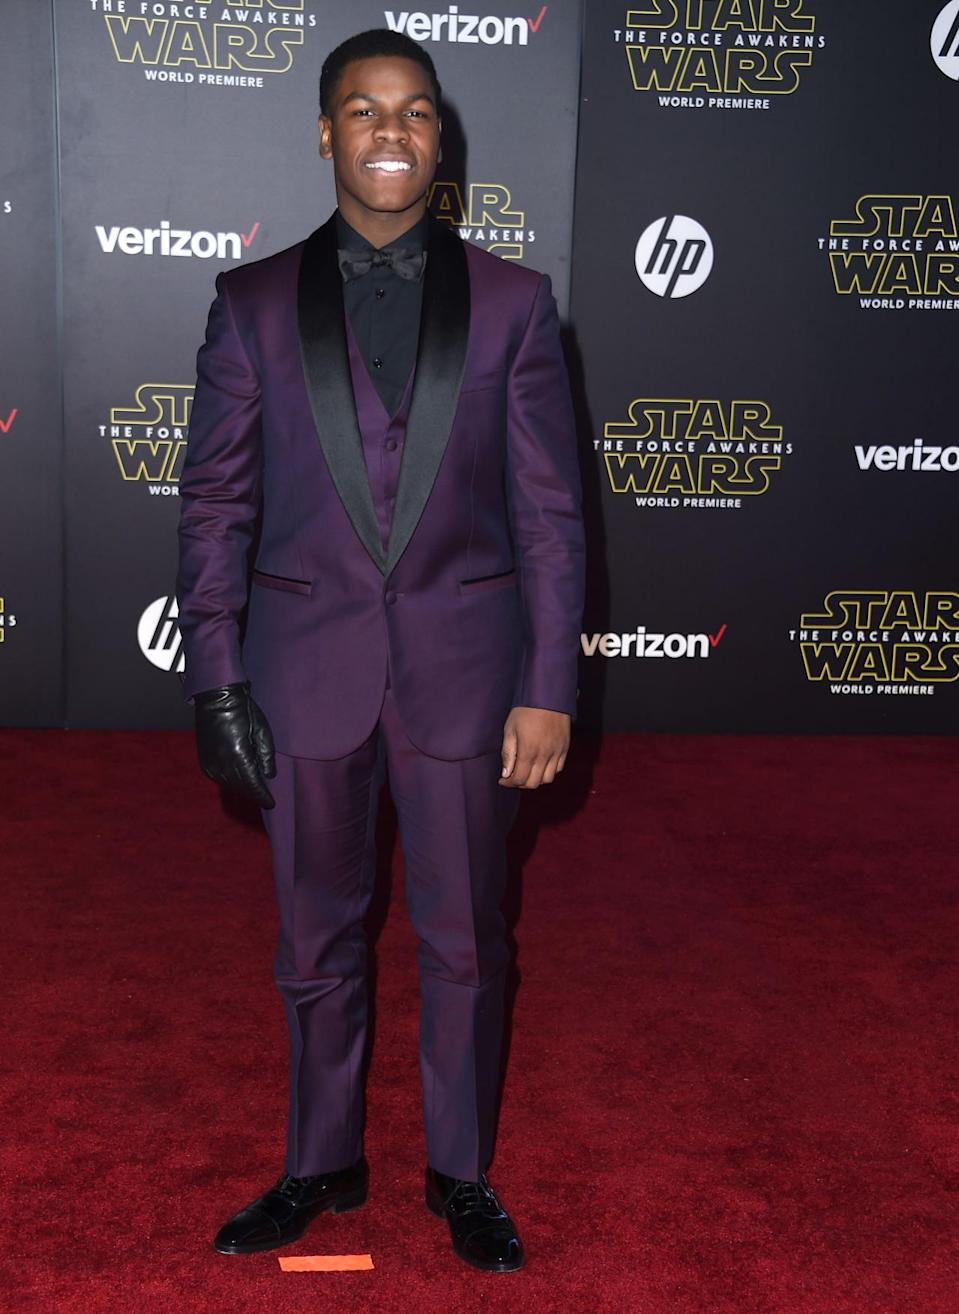 <p>Boyega, who plays Finn in the new <i>Star Wars </i>movie, wore a three piece purple suit and one leather glove to its LA premiere.</p><p><i>Photo: Getty Images</i><br></p>